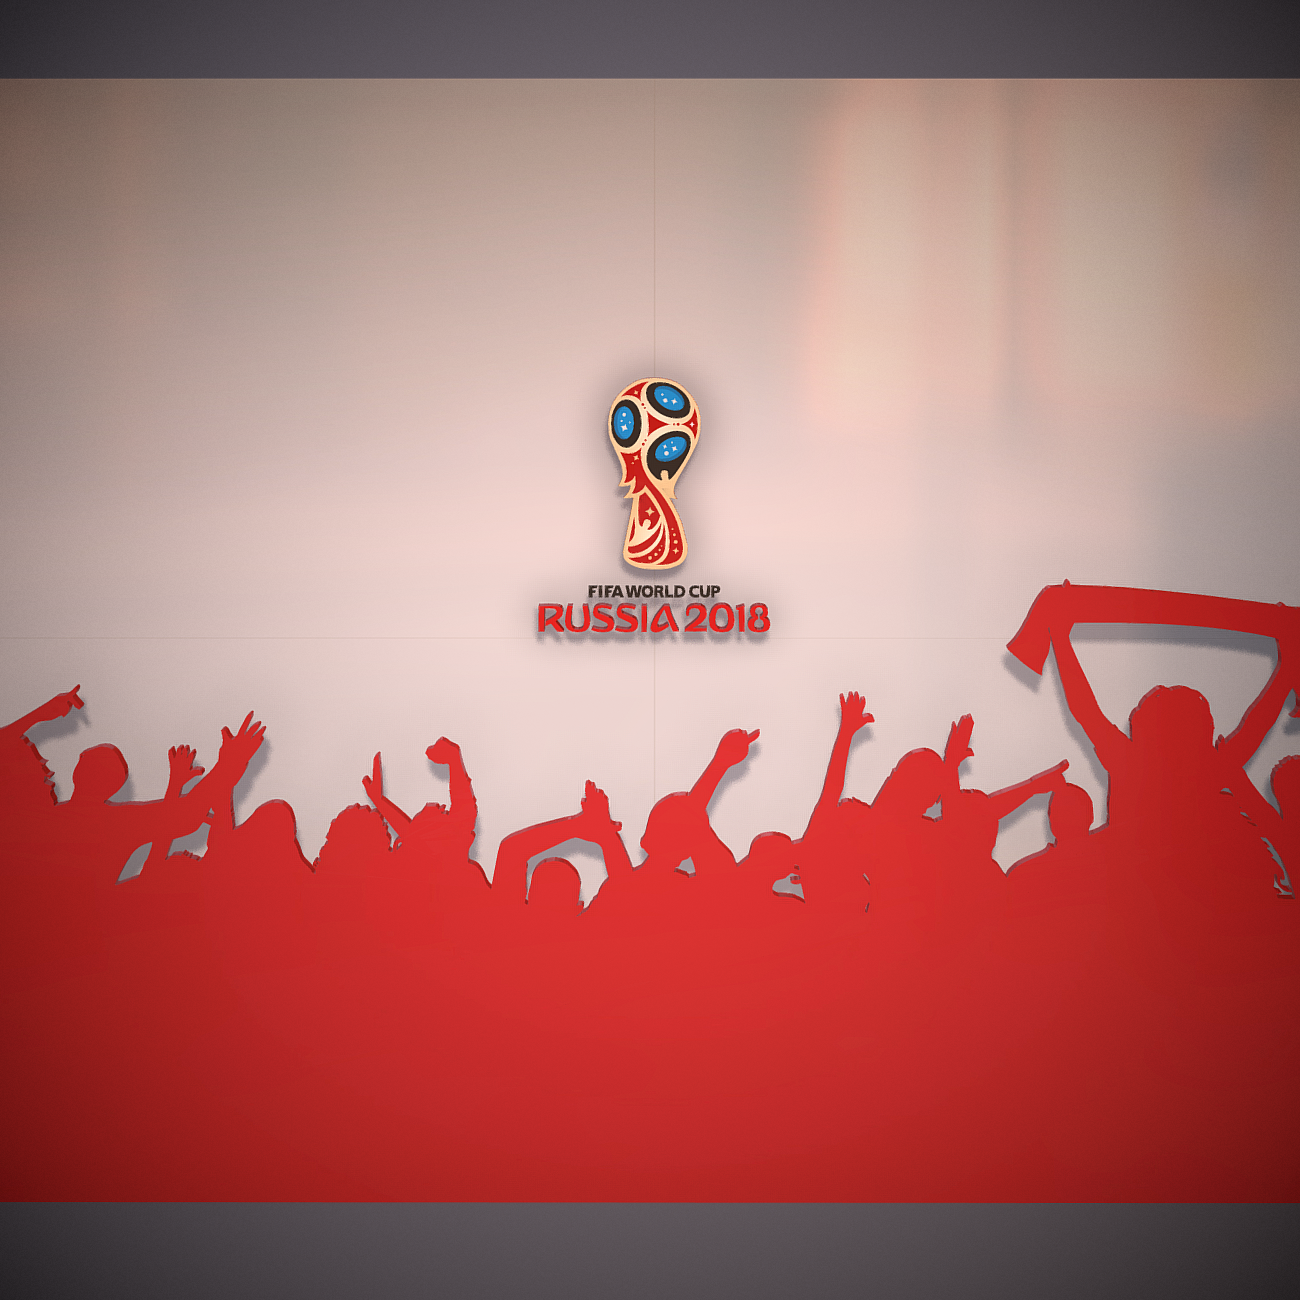 fifa world cup russia 2018 slyle 3d model 3ds max fbx ma mb obj 269741